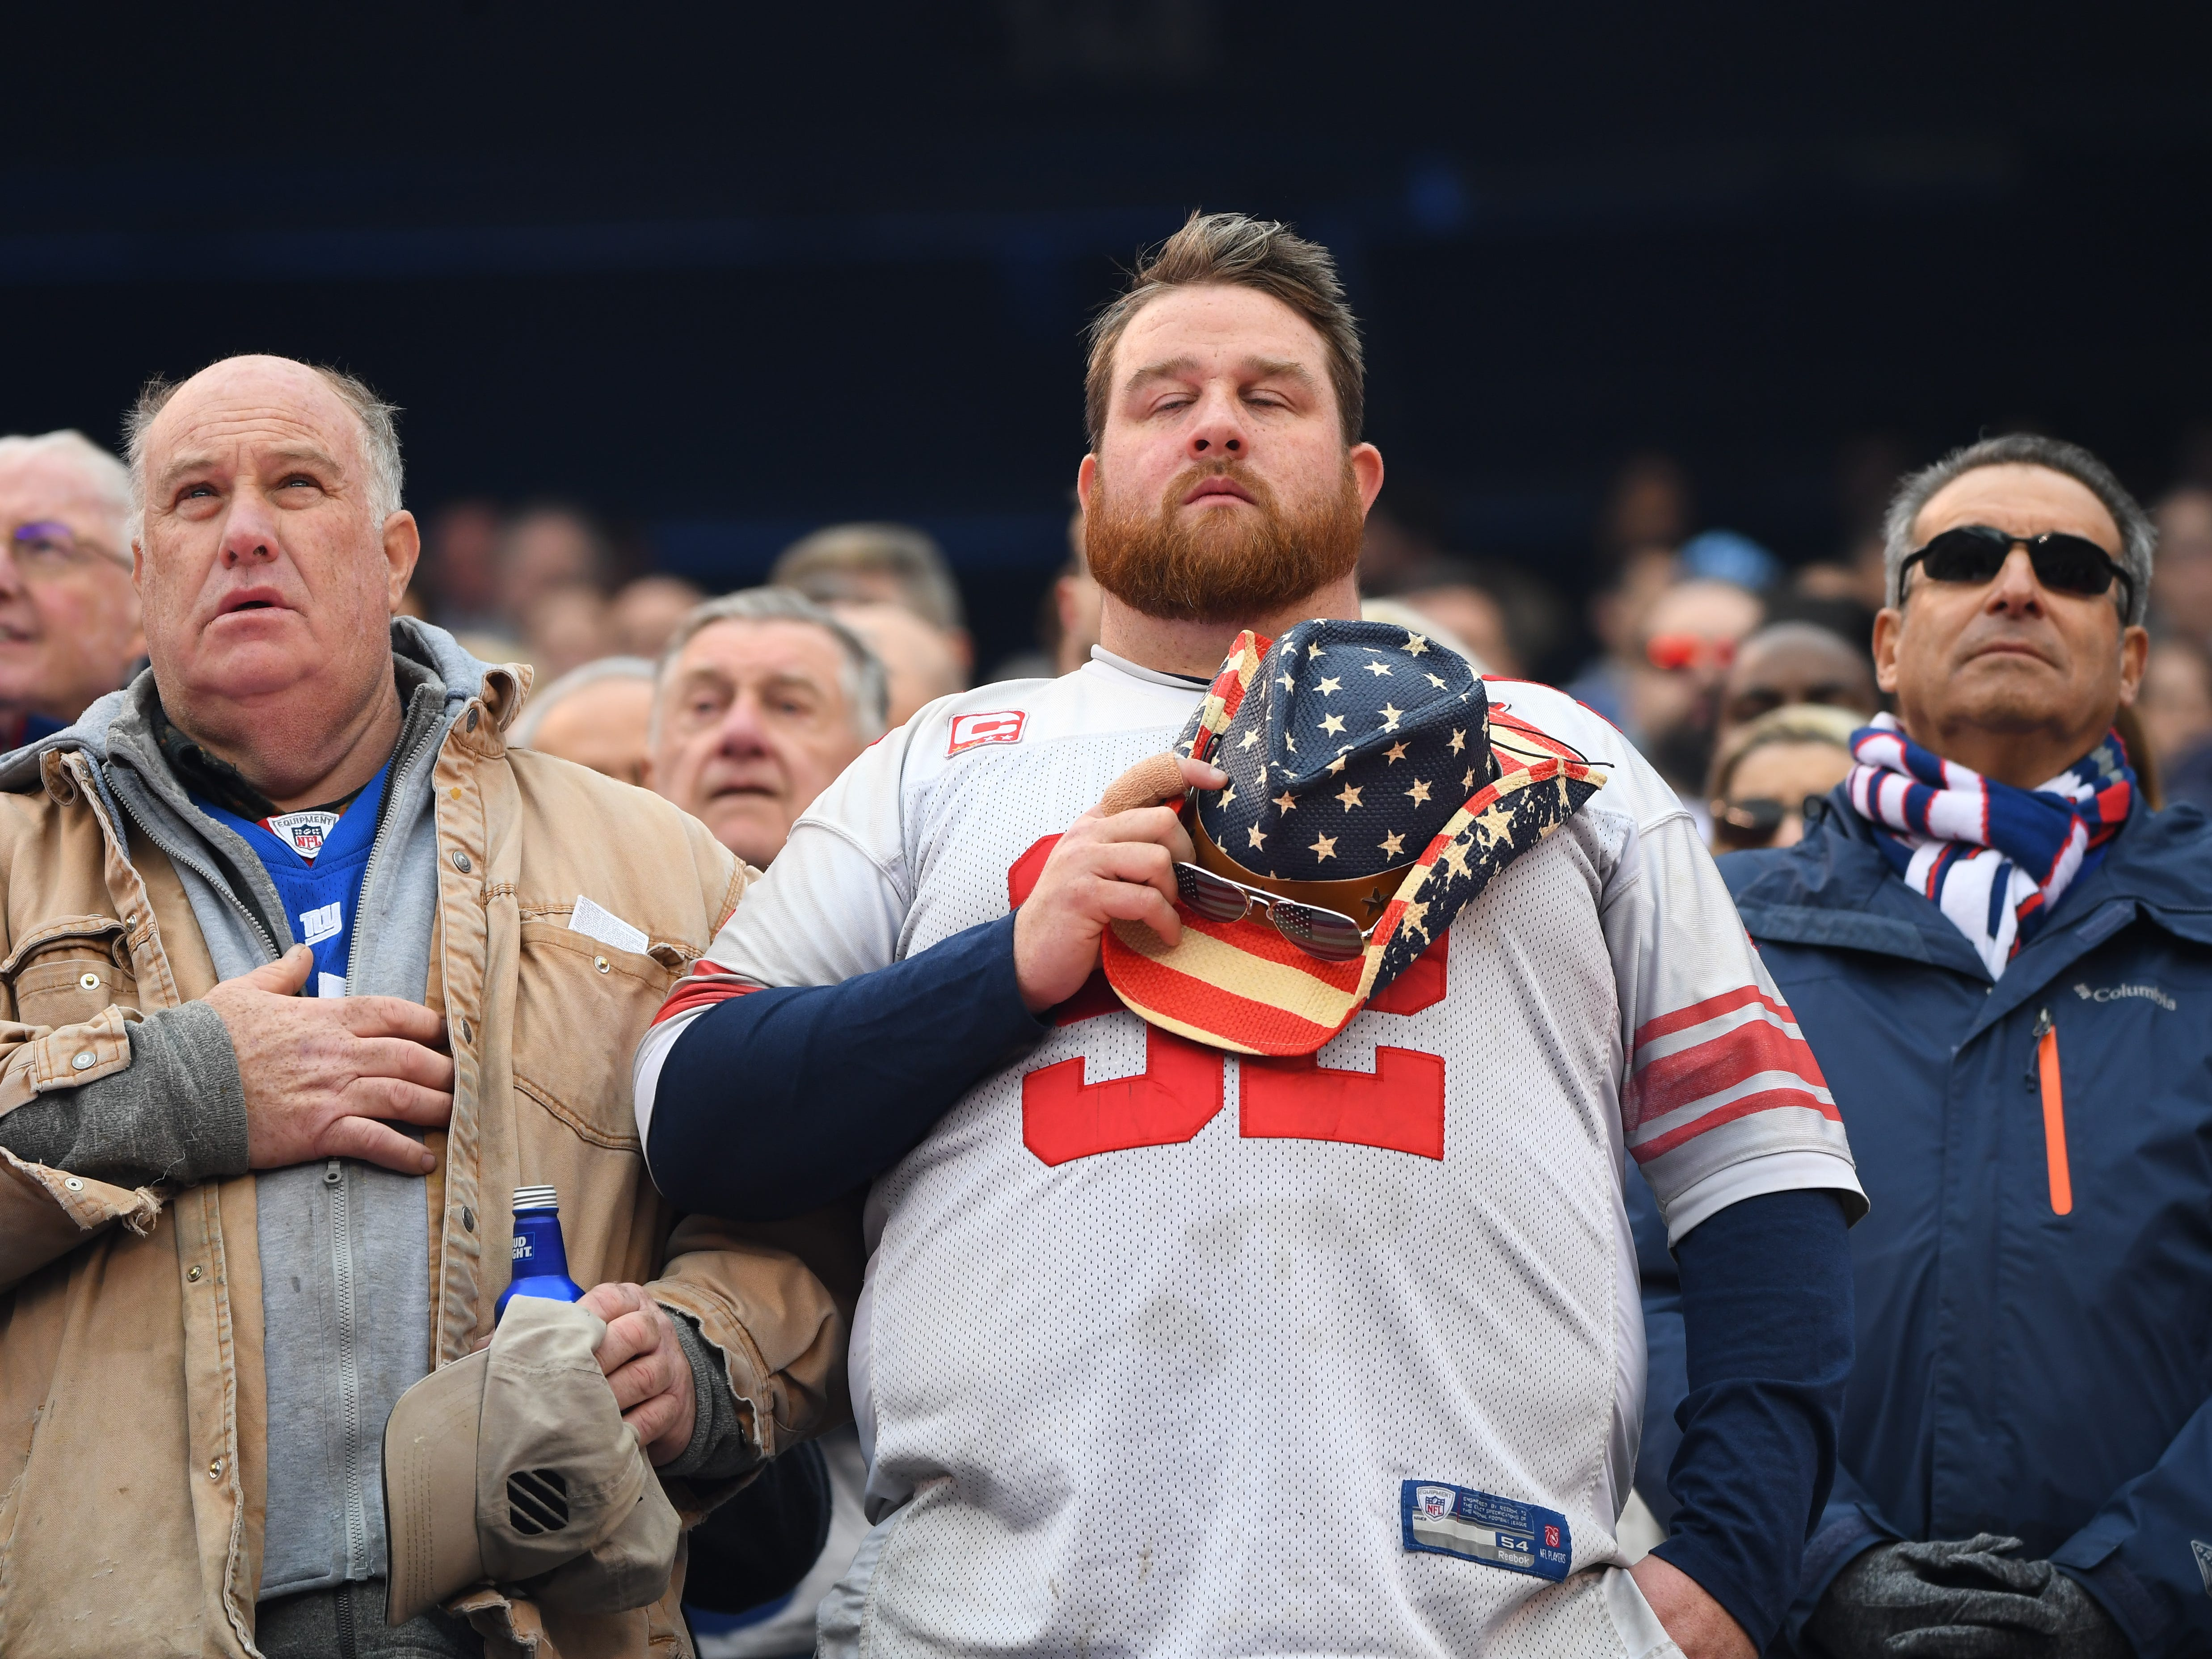 Fans pause for a moment of silence to honor the victims of the shooting in Pittsburgh before the game between the Washington Redskins and New York Giants, Sunday, Oct. 28, 2018, in East Rutherford, N.J.